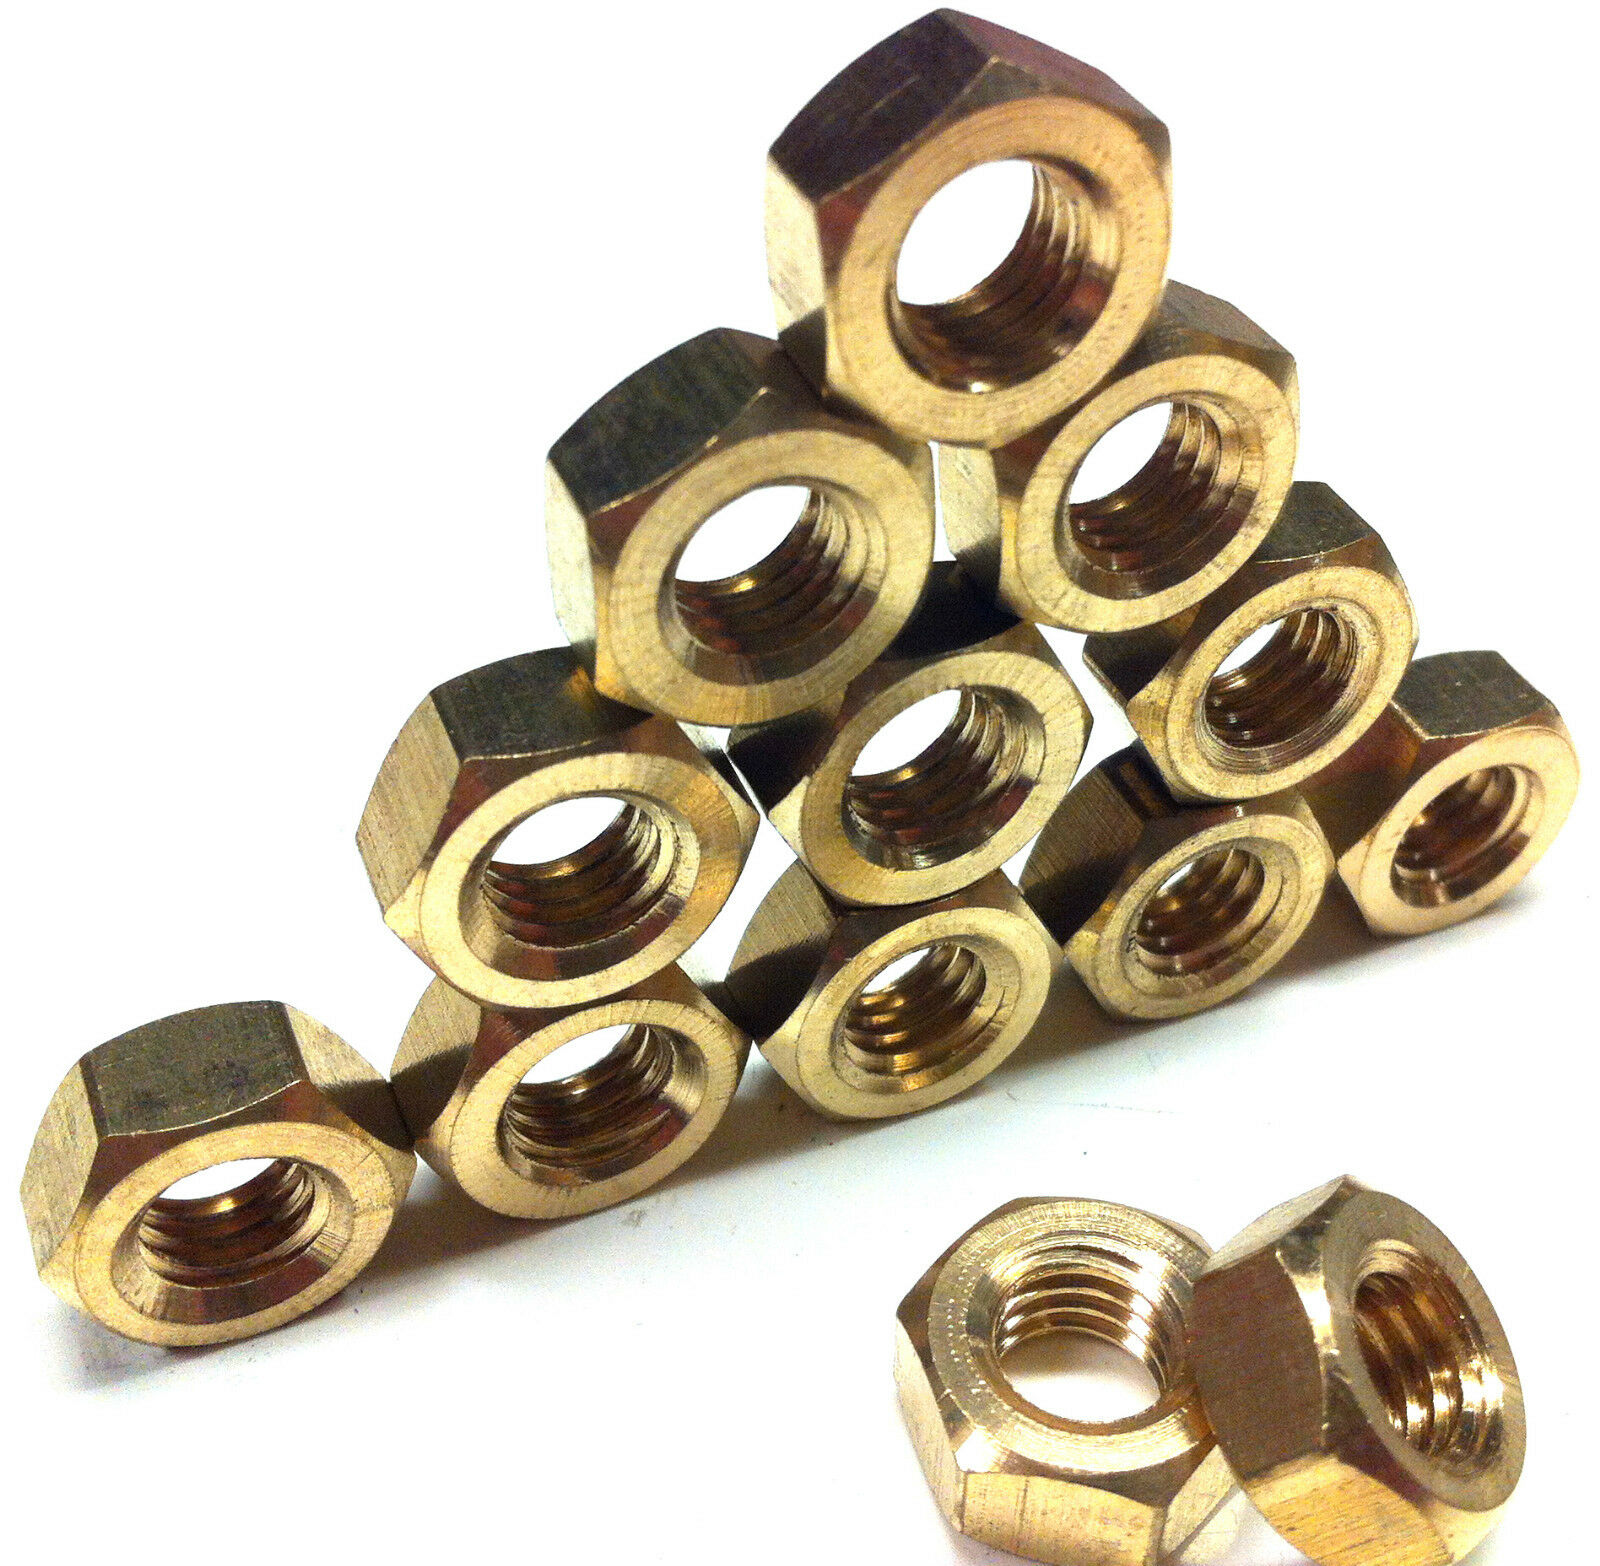 METRIC BRASS FULL NUTS - M2, M2.5, M3, M3.5, M4, M5, M6, M8, M10, M12, M16, M20